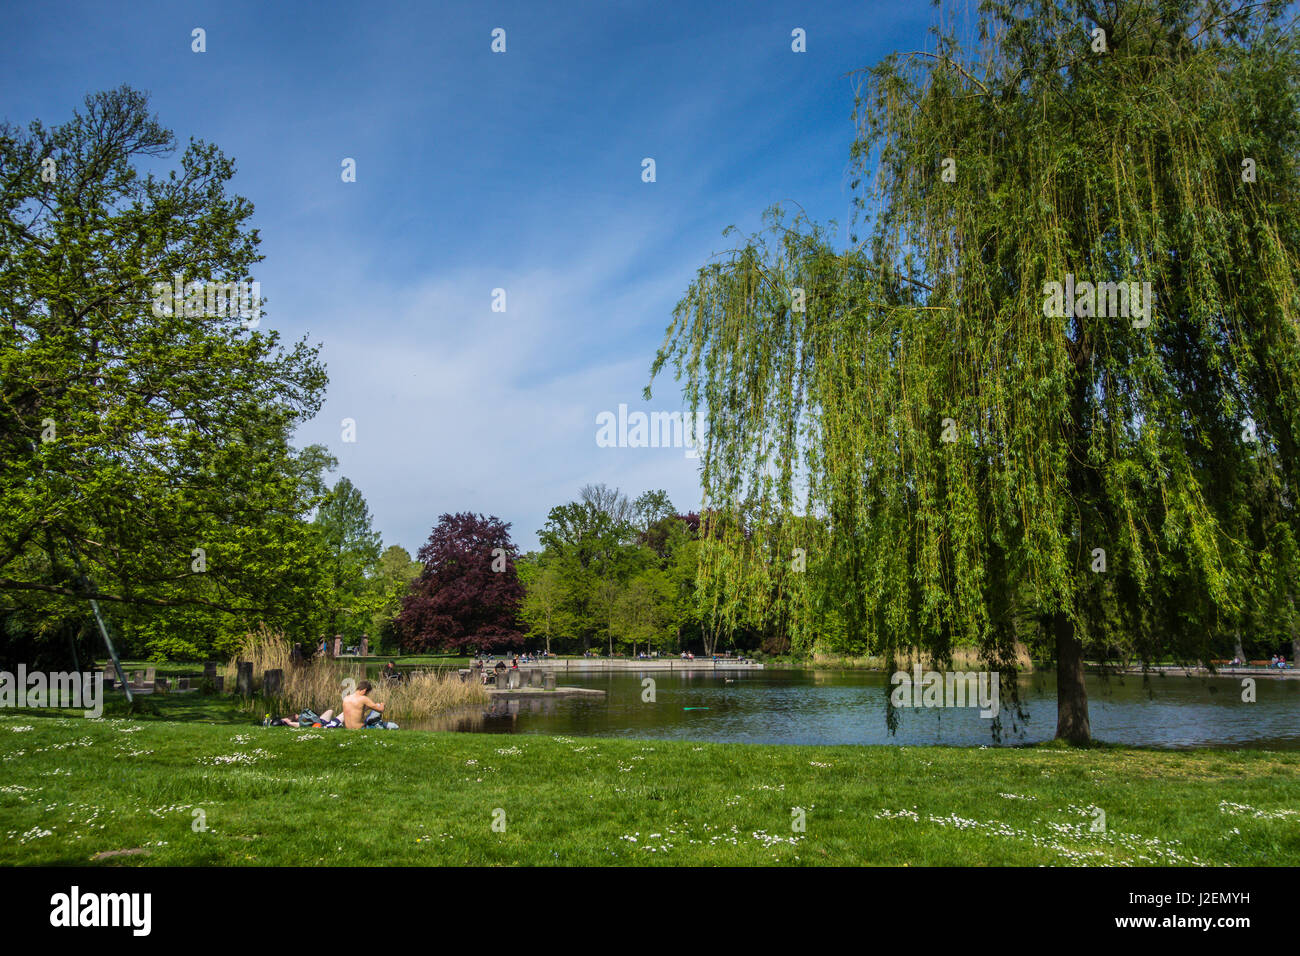 A restful day by a small lake at the Karlsruhe Botanical Gardens and Palace, Germany - Stock Image